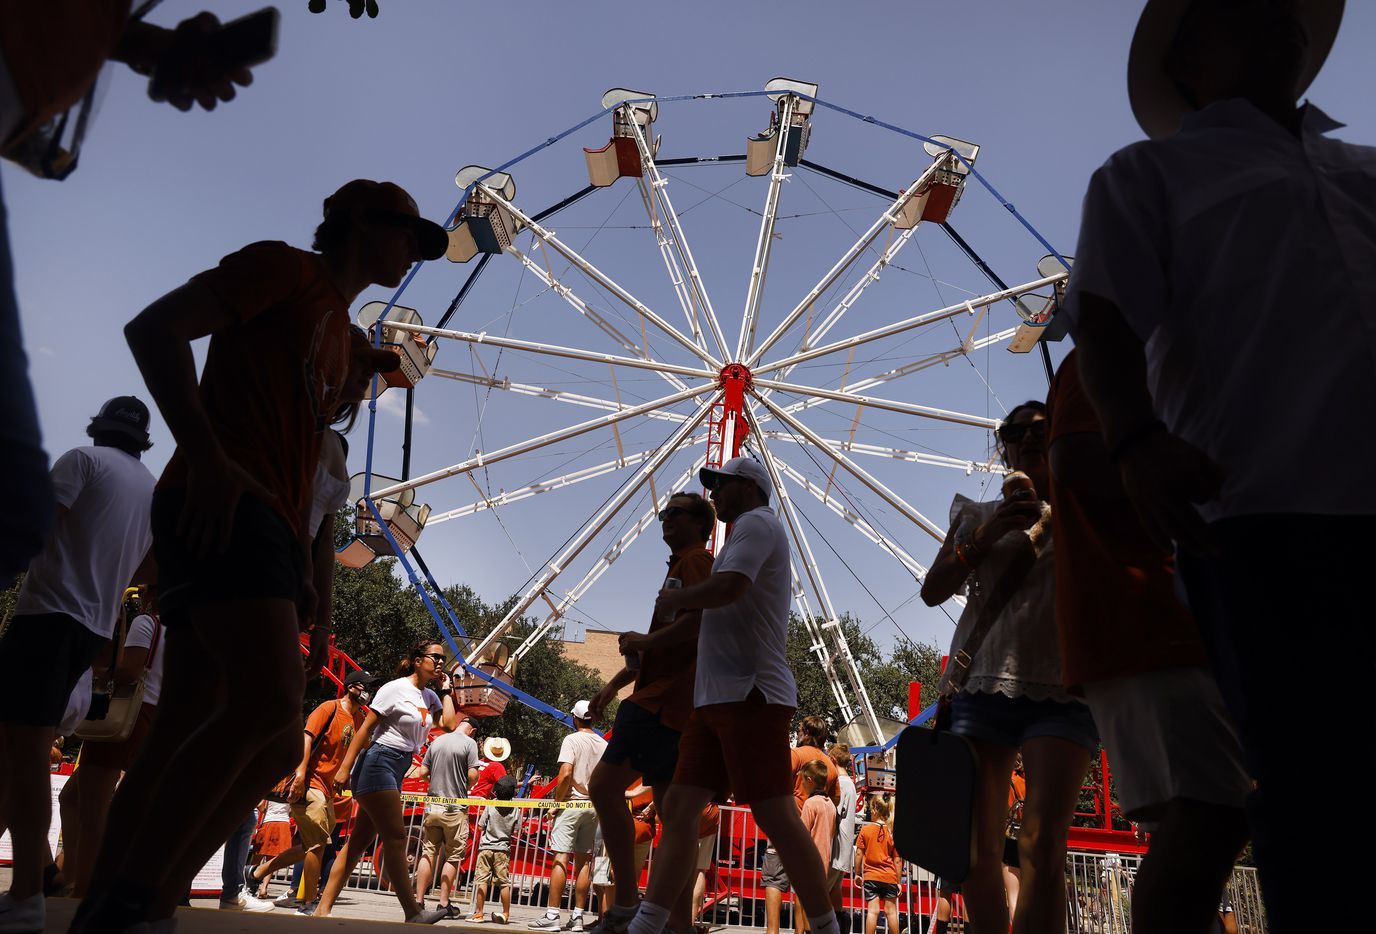 Fans ride a ferris wheel on Smokey's Midway, a mini 'state fair' outside of DKR-Texas Memorial Stadium in Austin, Saturday, September 4, 2021. The Longhorns were facing the Louisiana-Lafayette Ragin Cajuns. (Tom Fox/The Dallas Morning News)